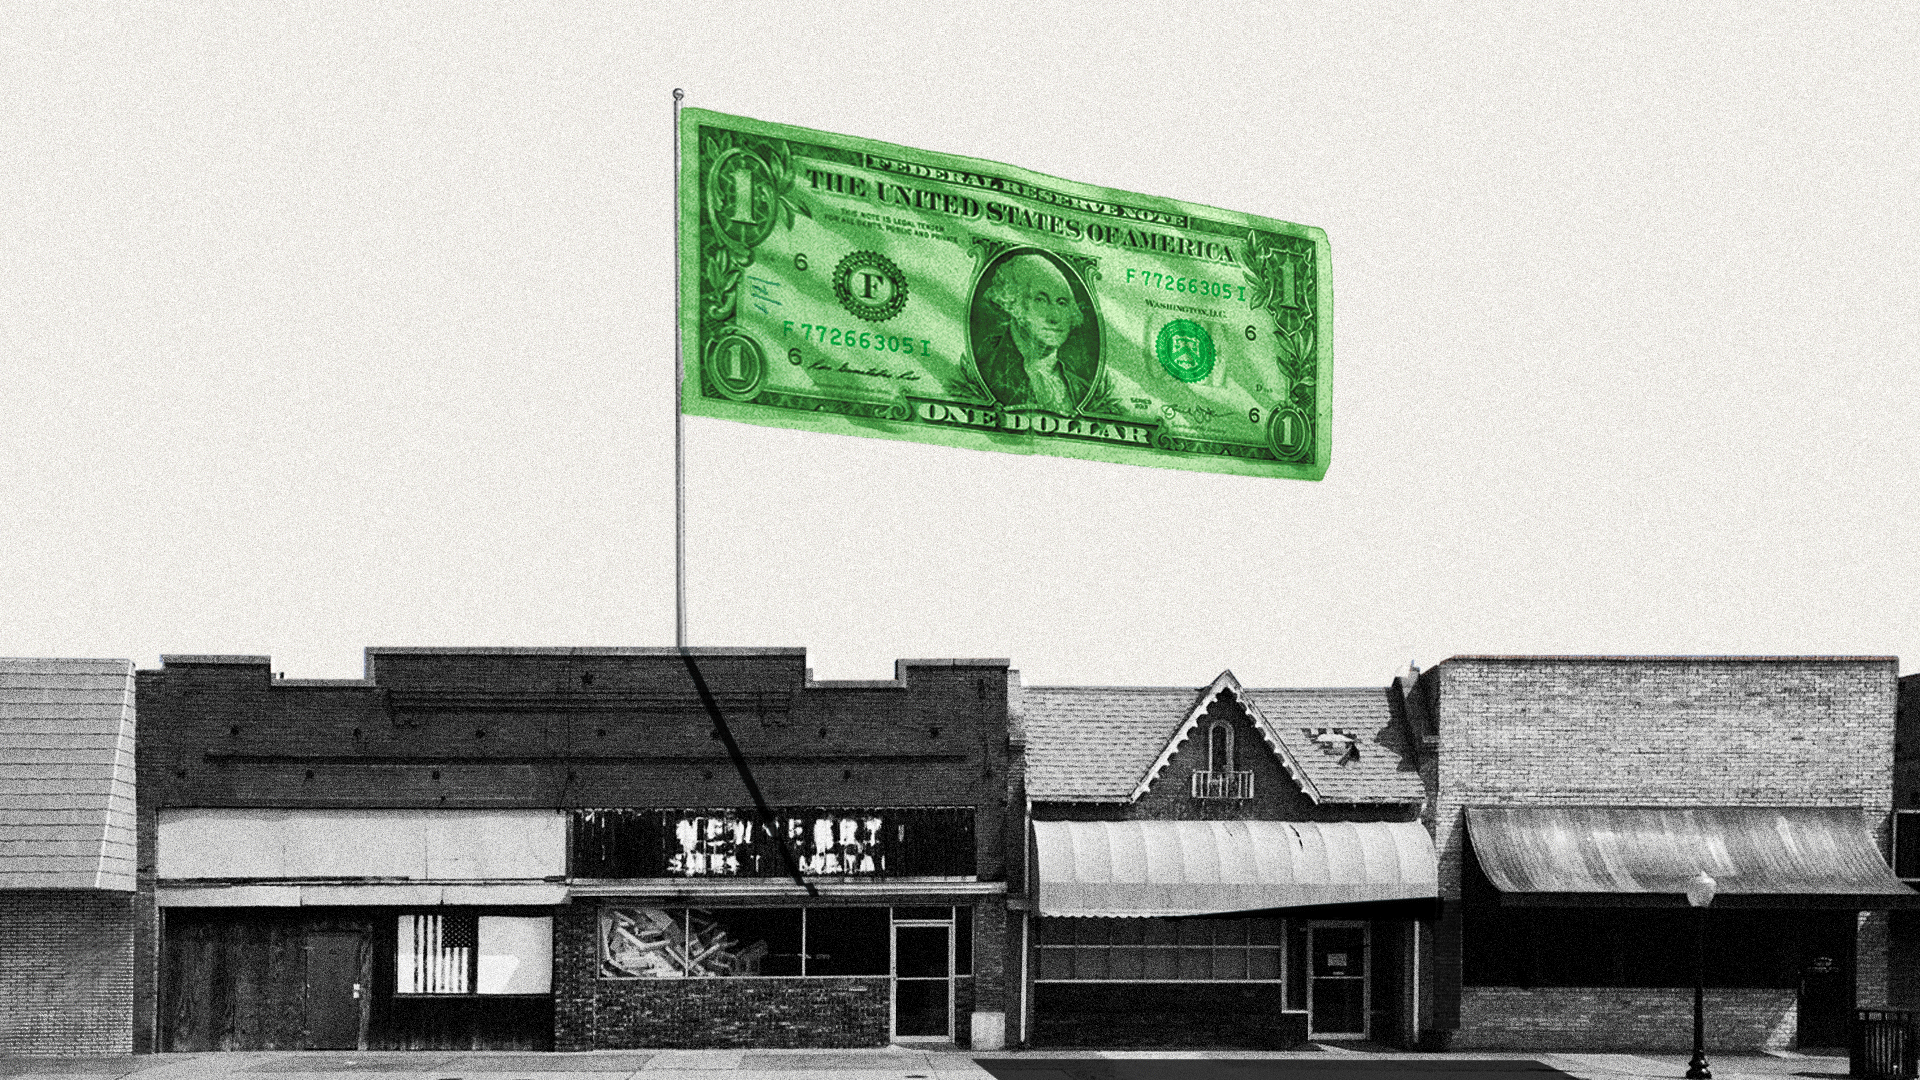 Illustration of a dollar bill as a flag, flying over a shuttered main street